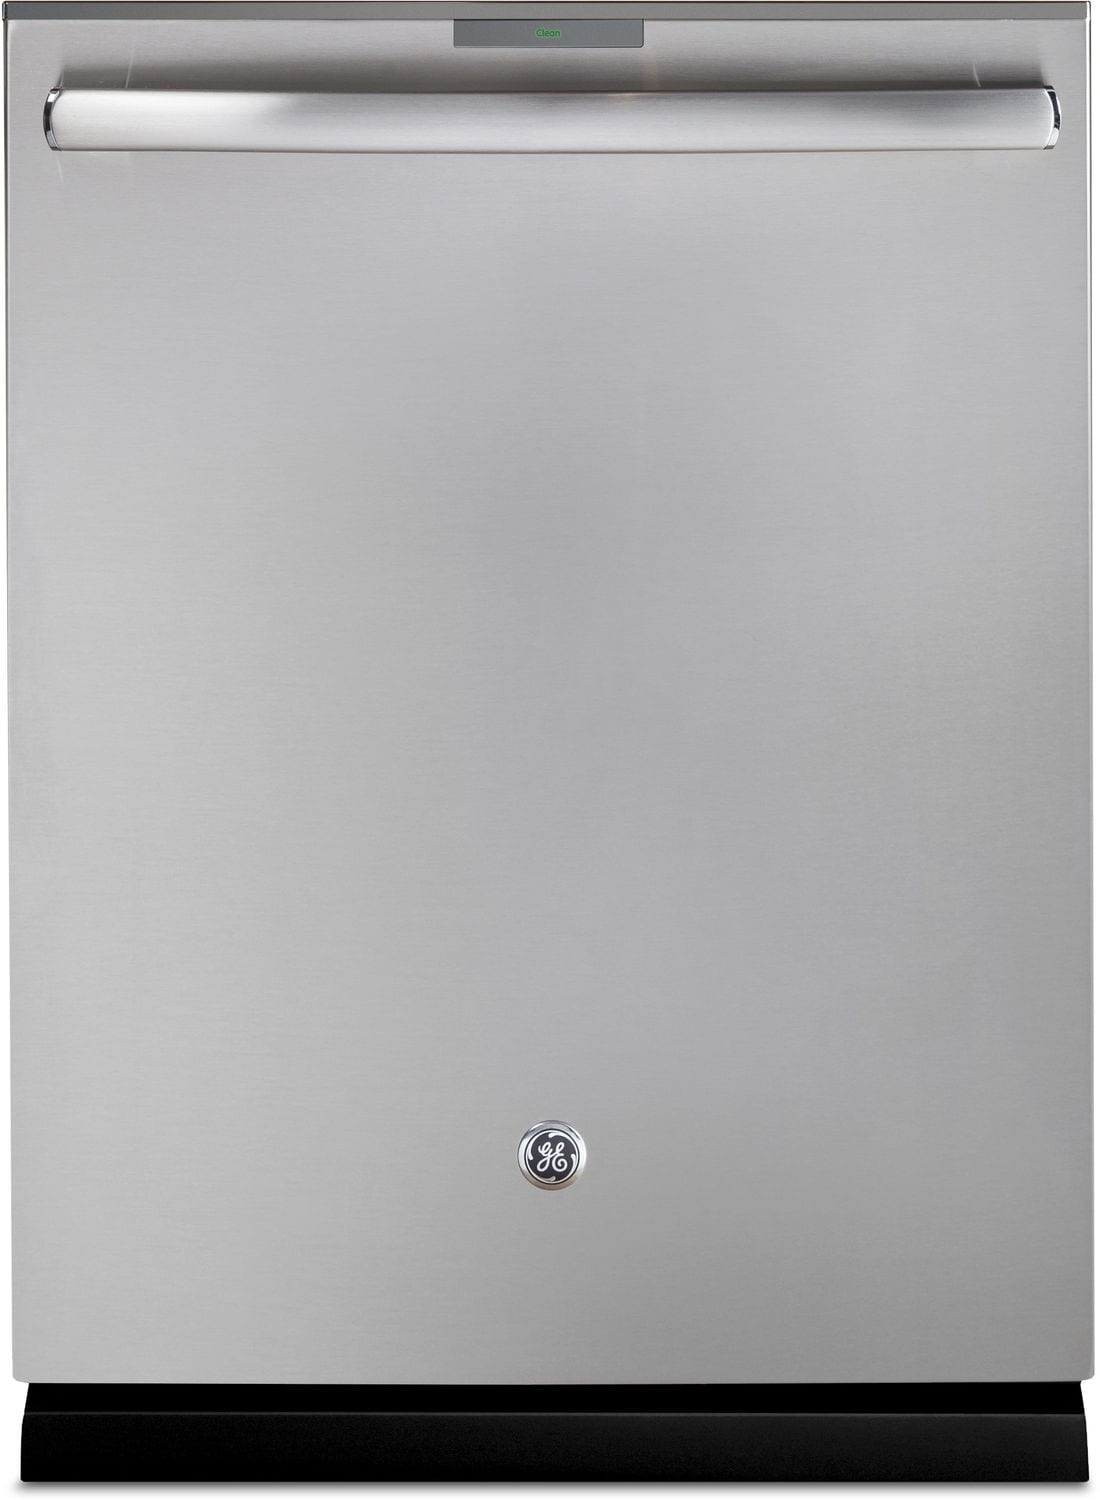 GE Built-In Tall Tub Dishwasher with Hidden Controls – PDT845SSJSS